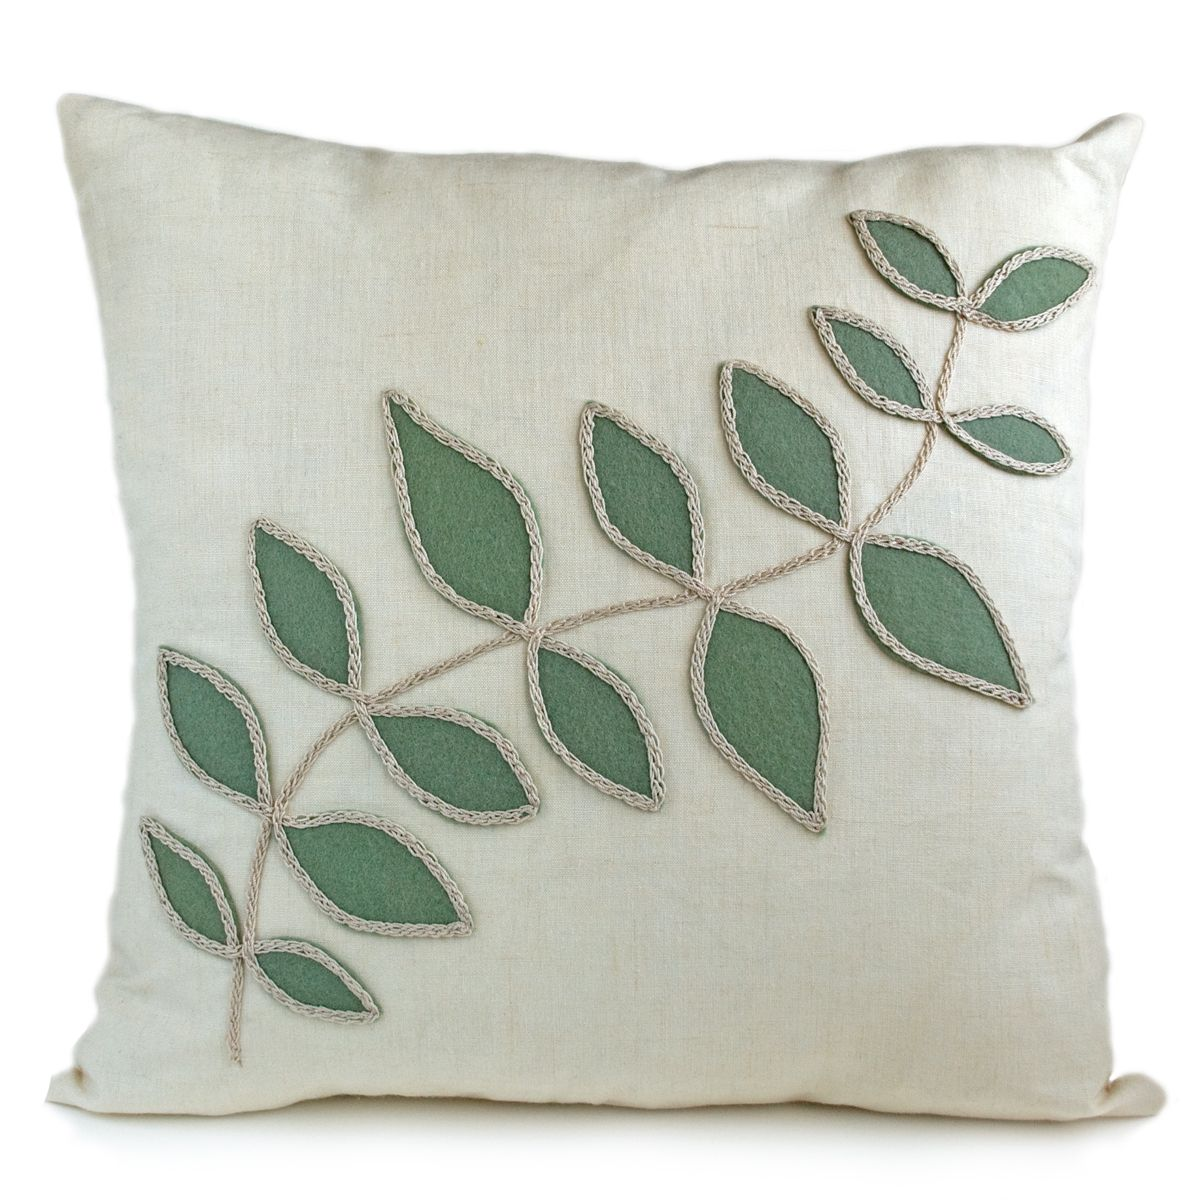 Nutmeg and Sage home ware